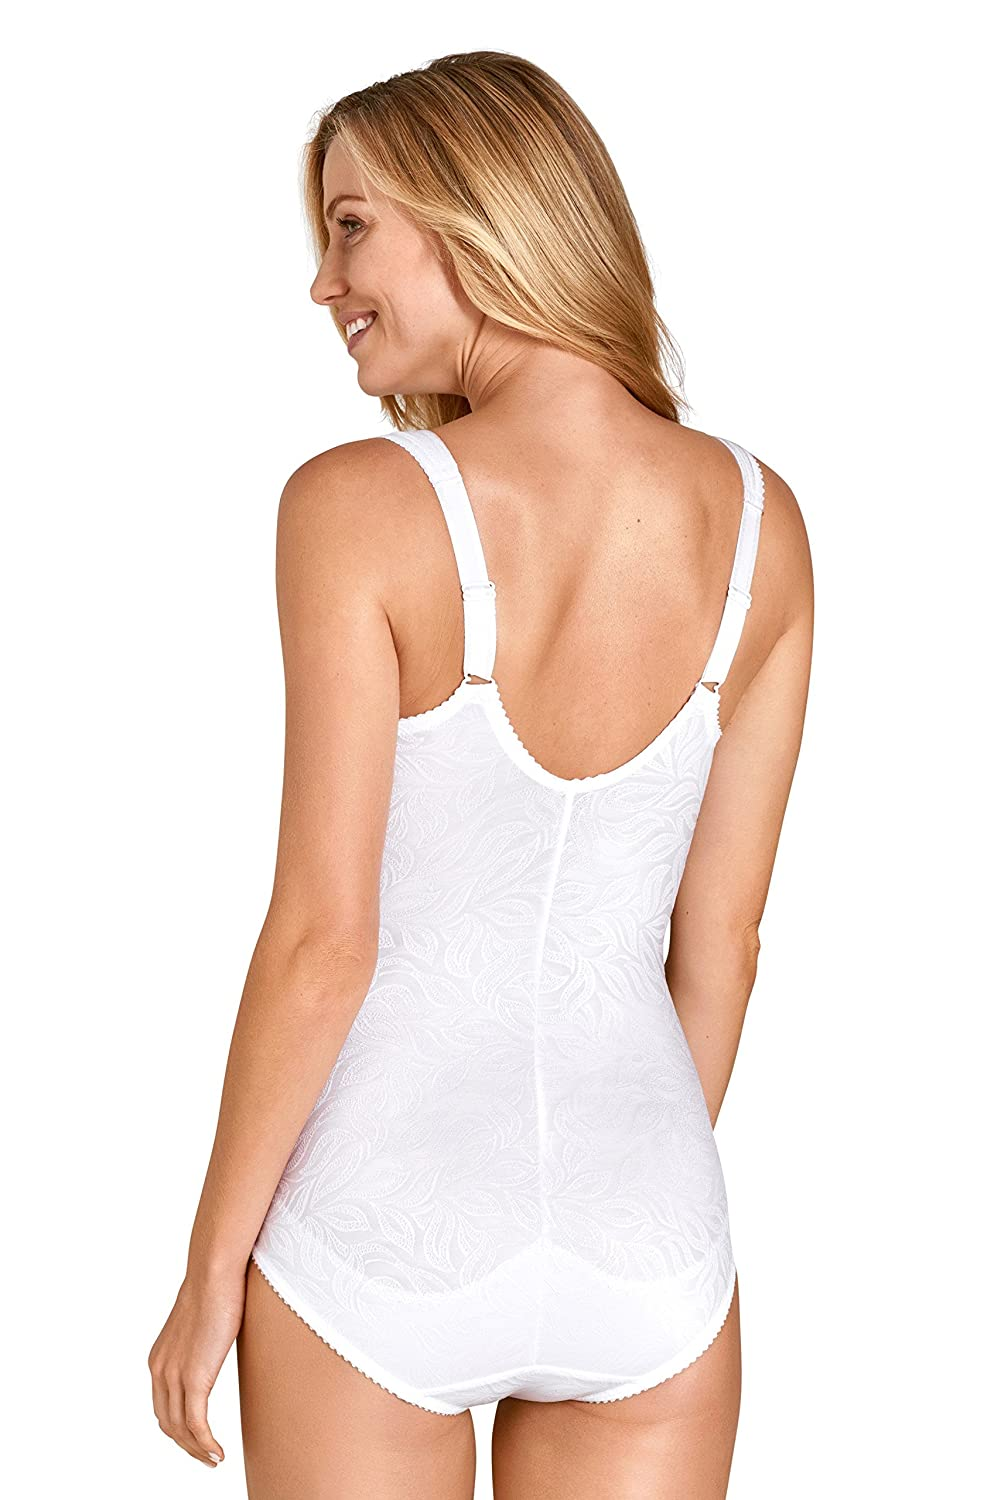 Shapewear The Best Body Shaping Slimming Support Body Shaper Keep Fresh White Material 46c One Only